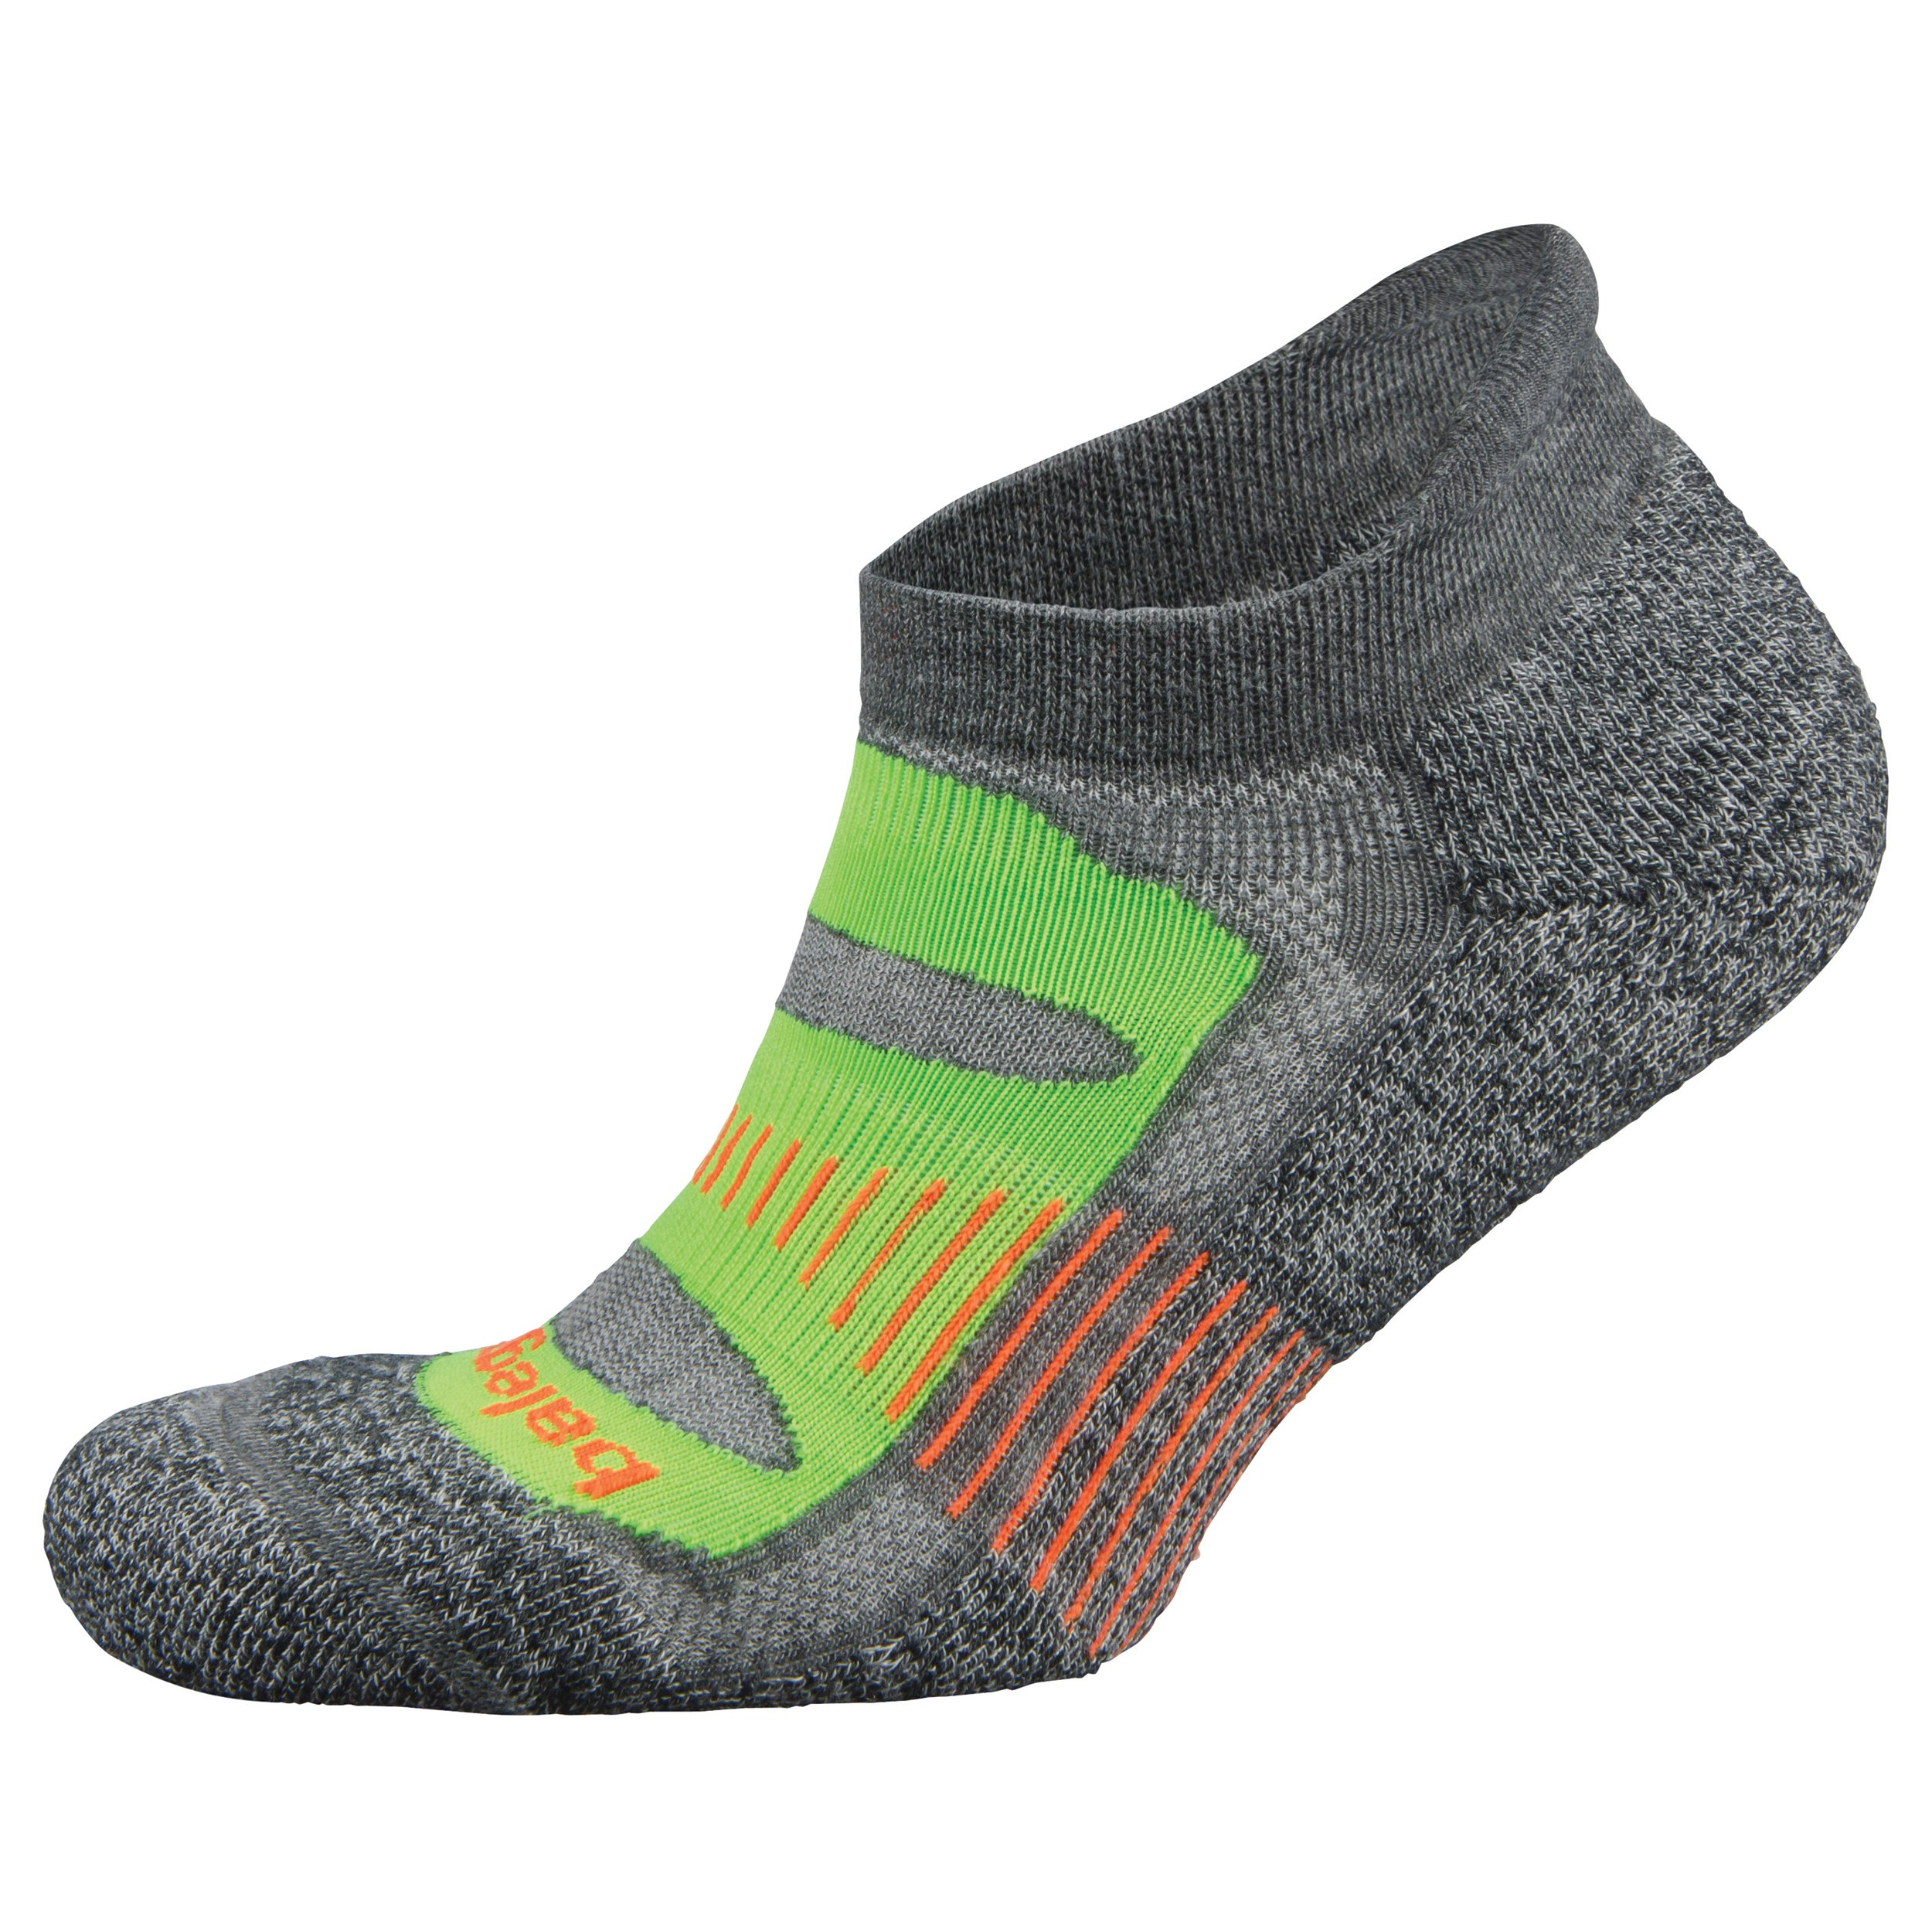 Balega Blister Resist No Show Running Socks For Men and Women (1 Pair), Charcoal Lime, Small by Balega